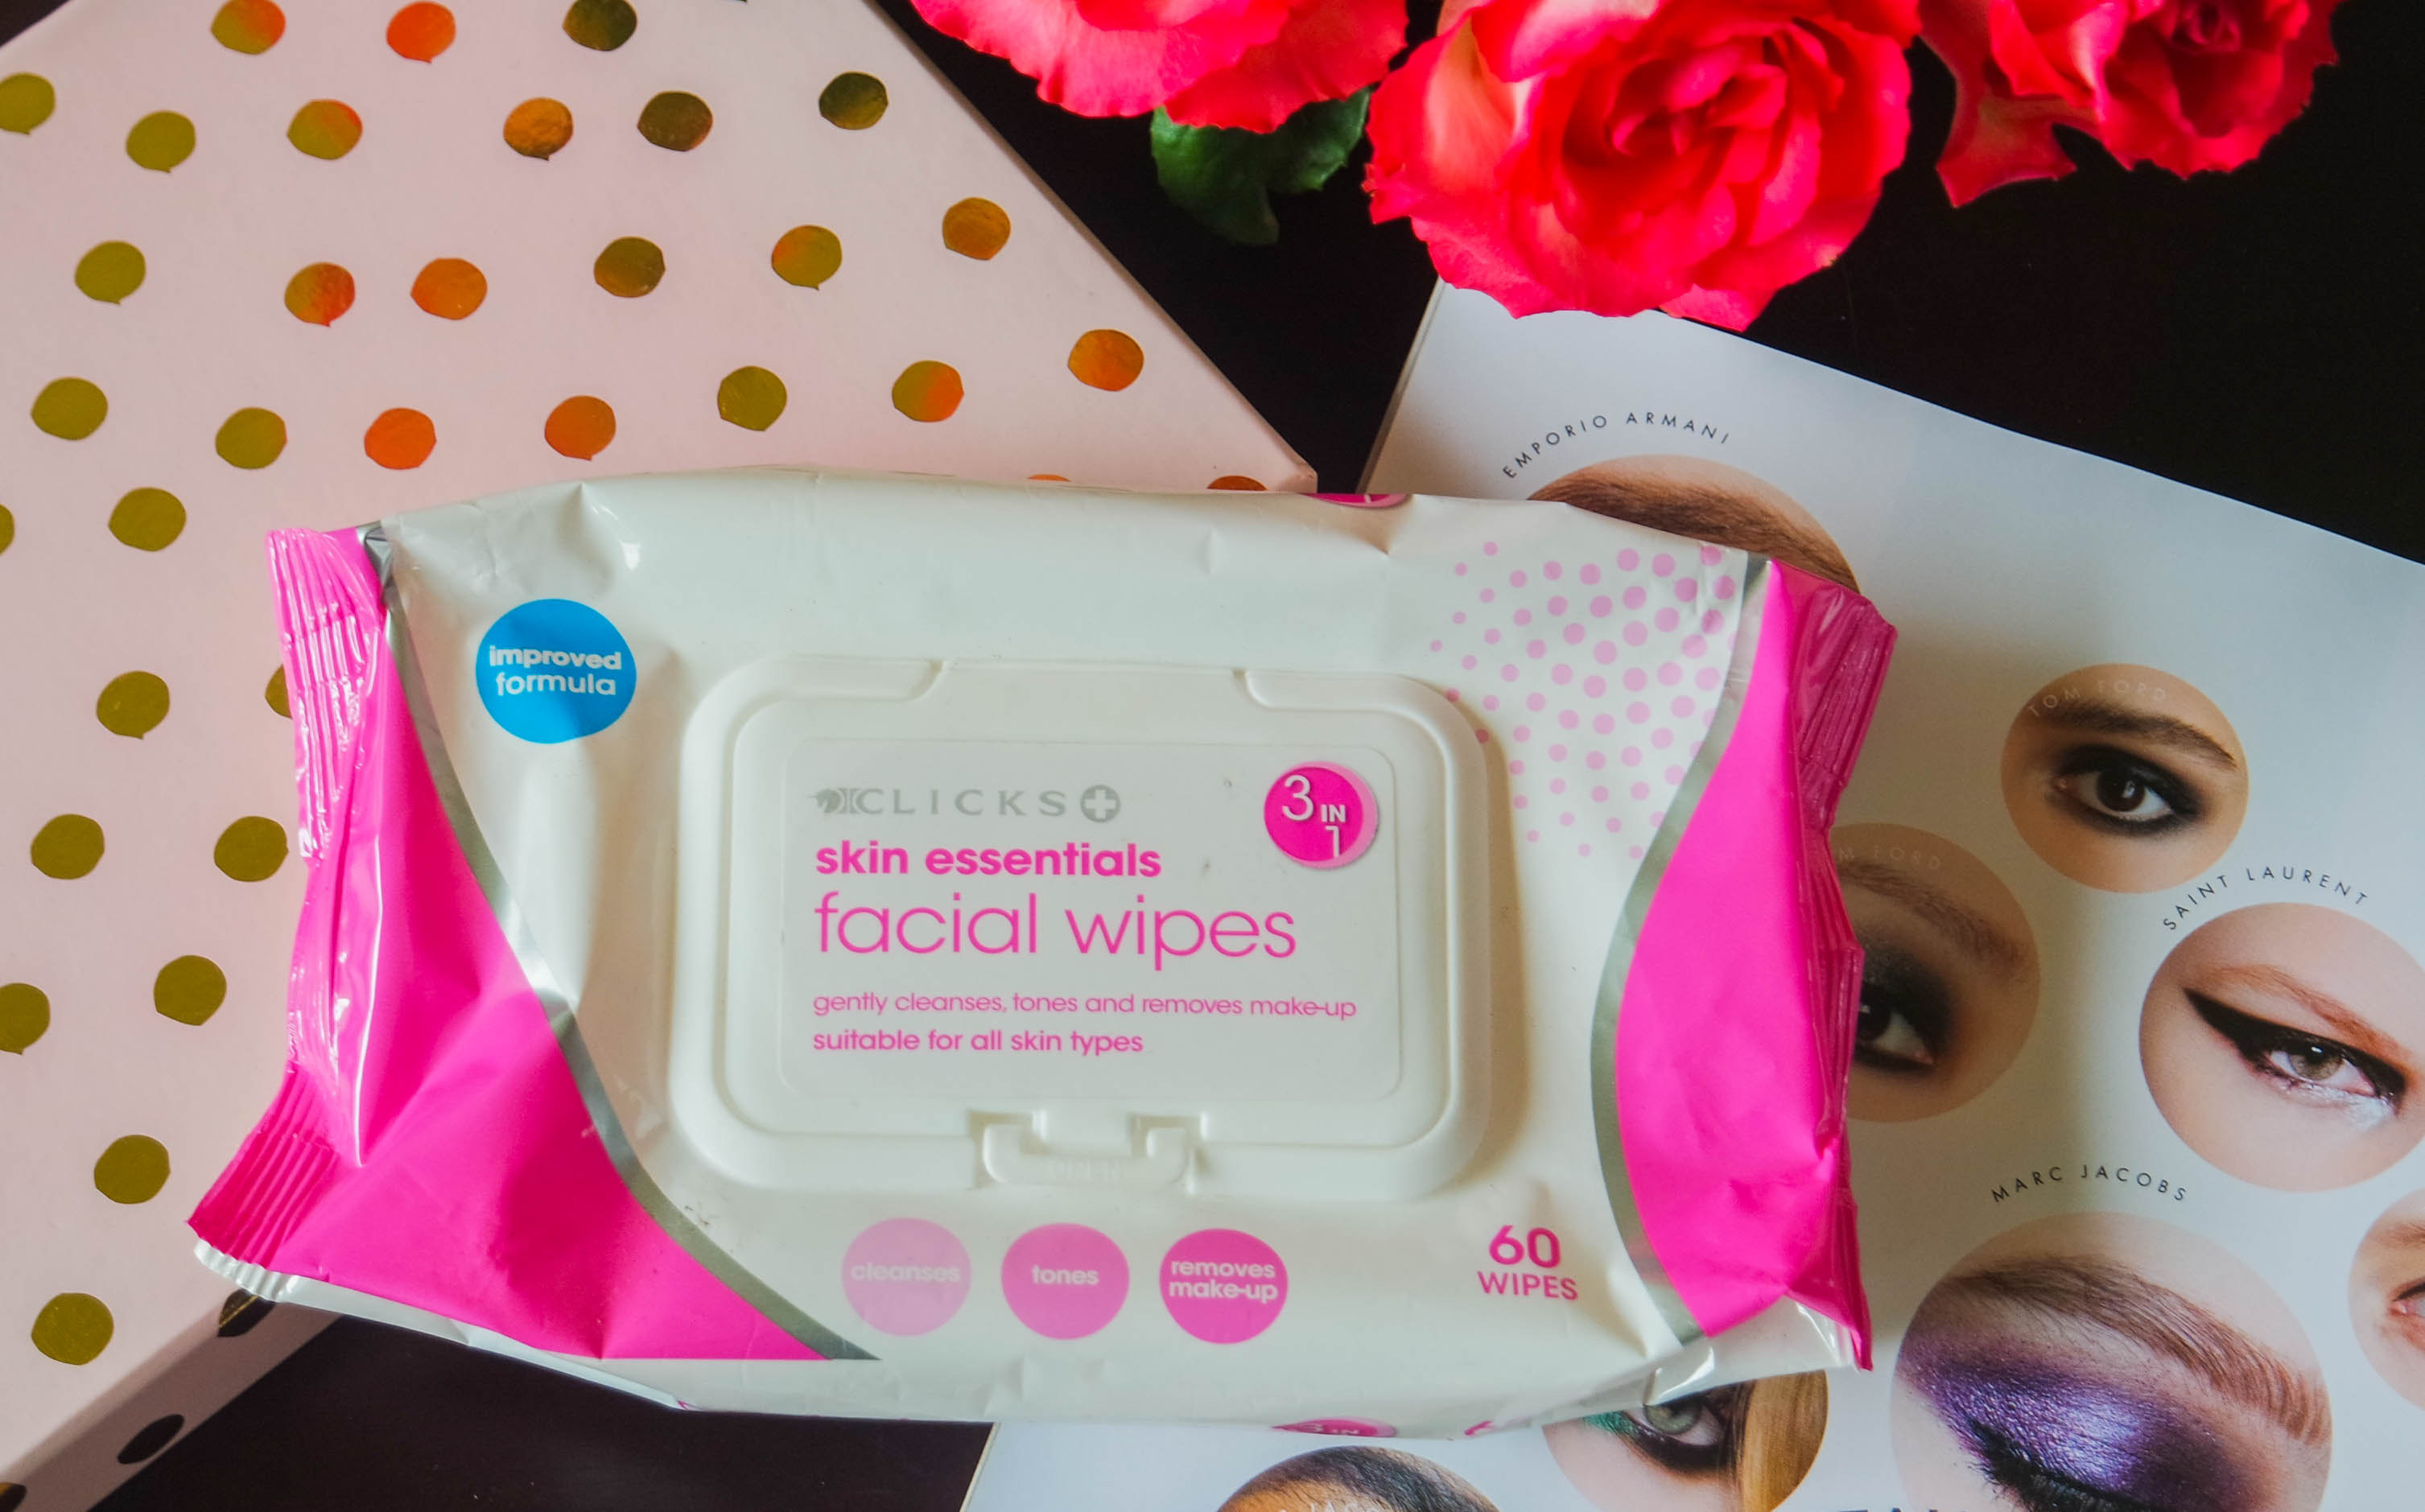 Skin essentials facial wipes